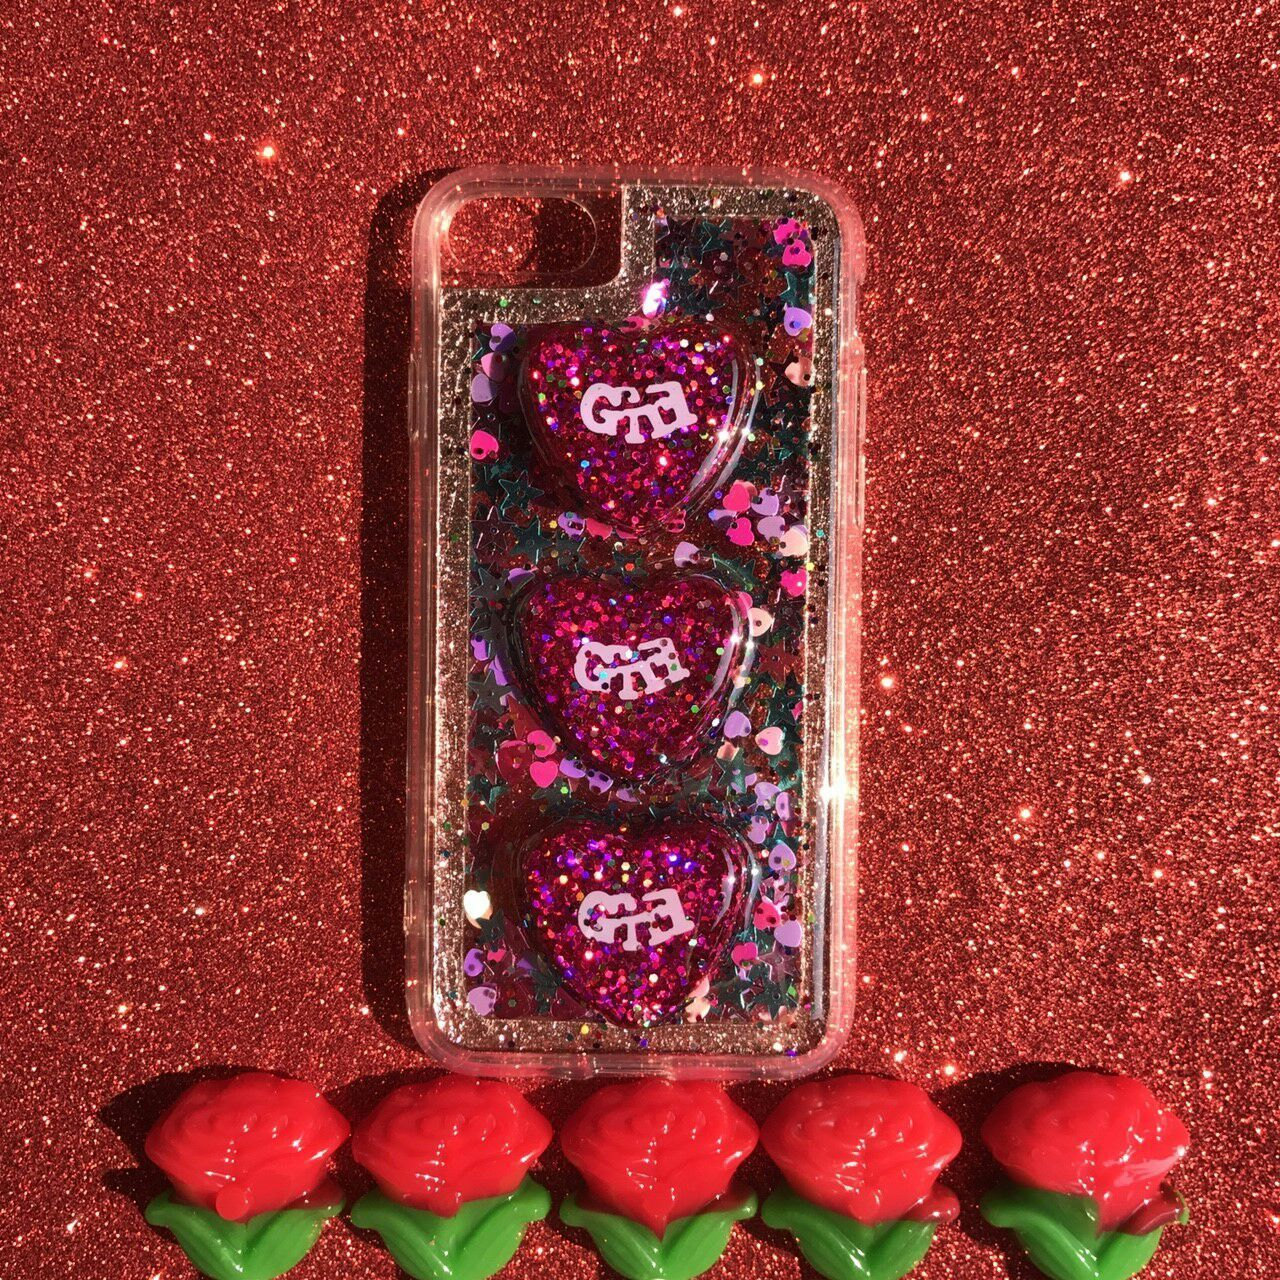 ★xmagic★エックスマジック★Valentine SP Case★GirlGirlGirl